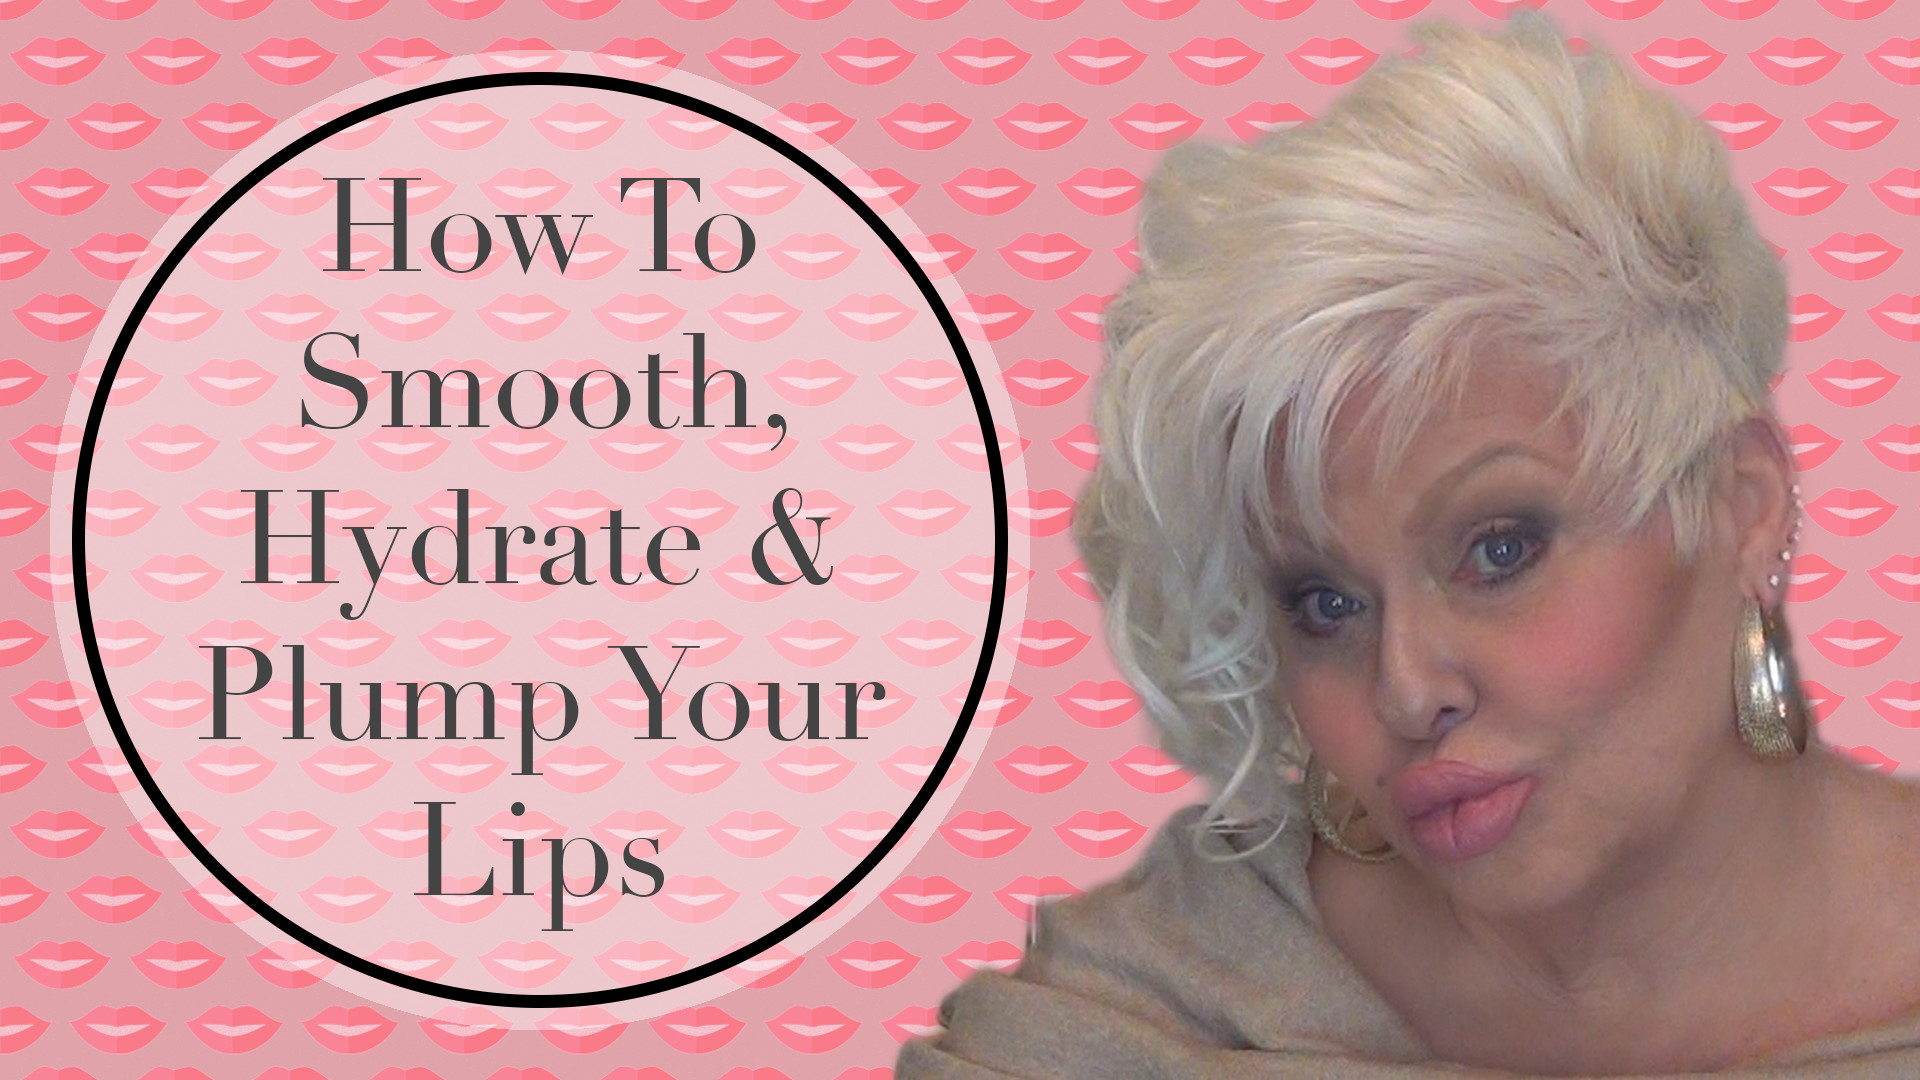 How to Smooth, Hydrate & Plump Your Lips